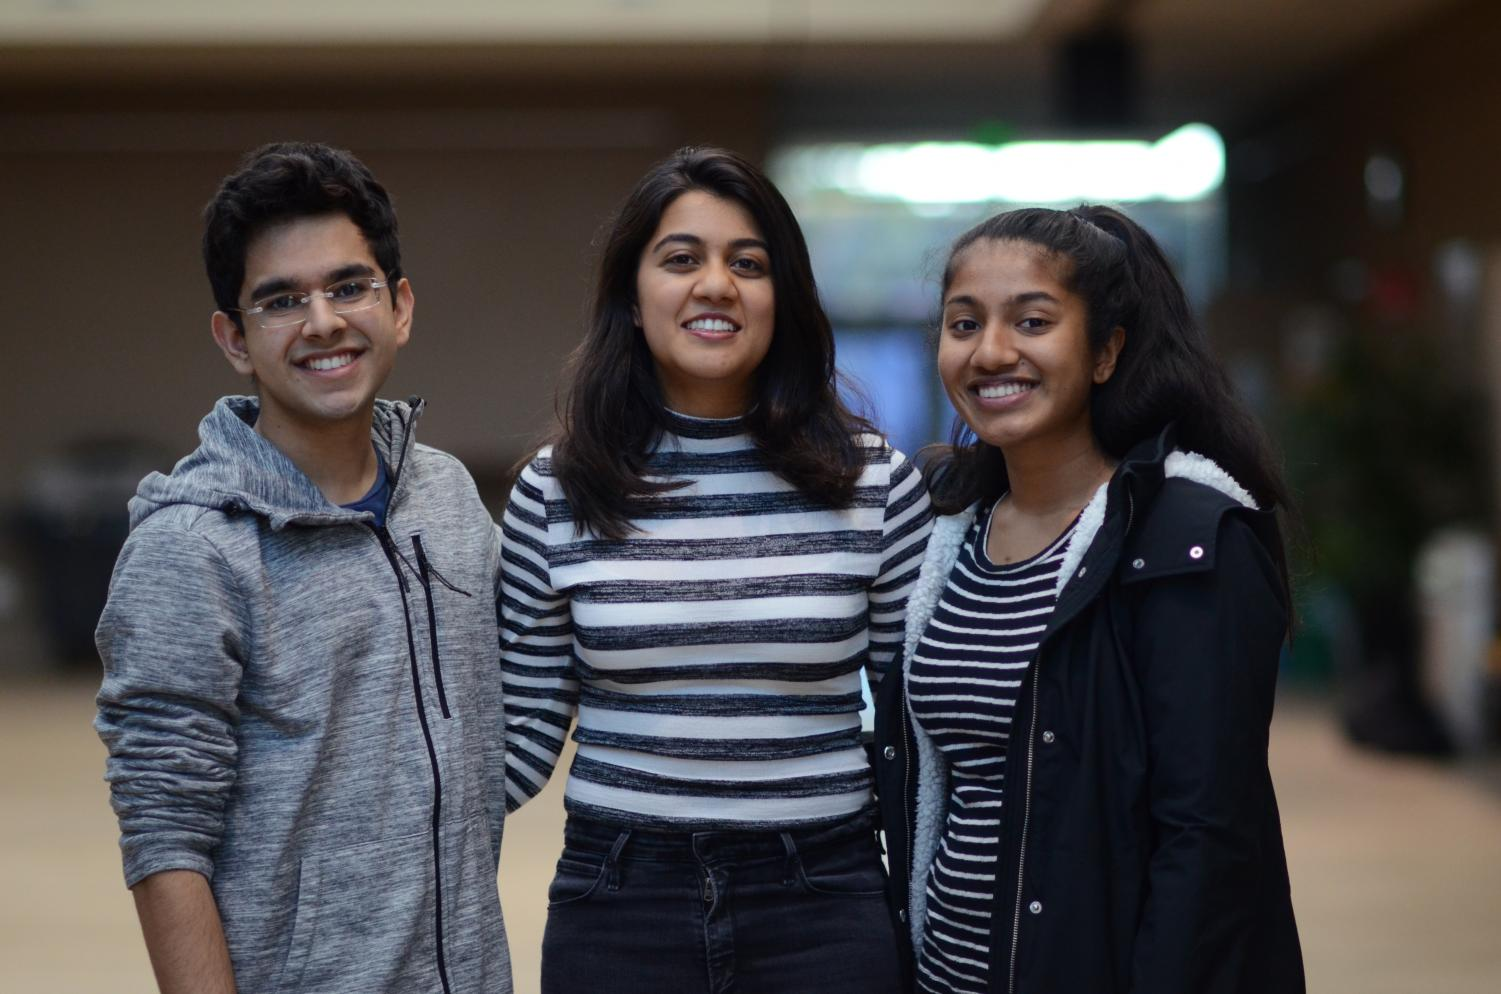 Harker's 2019 Regeneron Science Talent Search finalists, all seniors, pose for a picture. From left to right: Ayush Alag, Natasha Maniar and Ruhi Sayana.